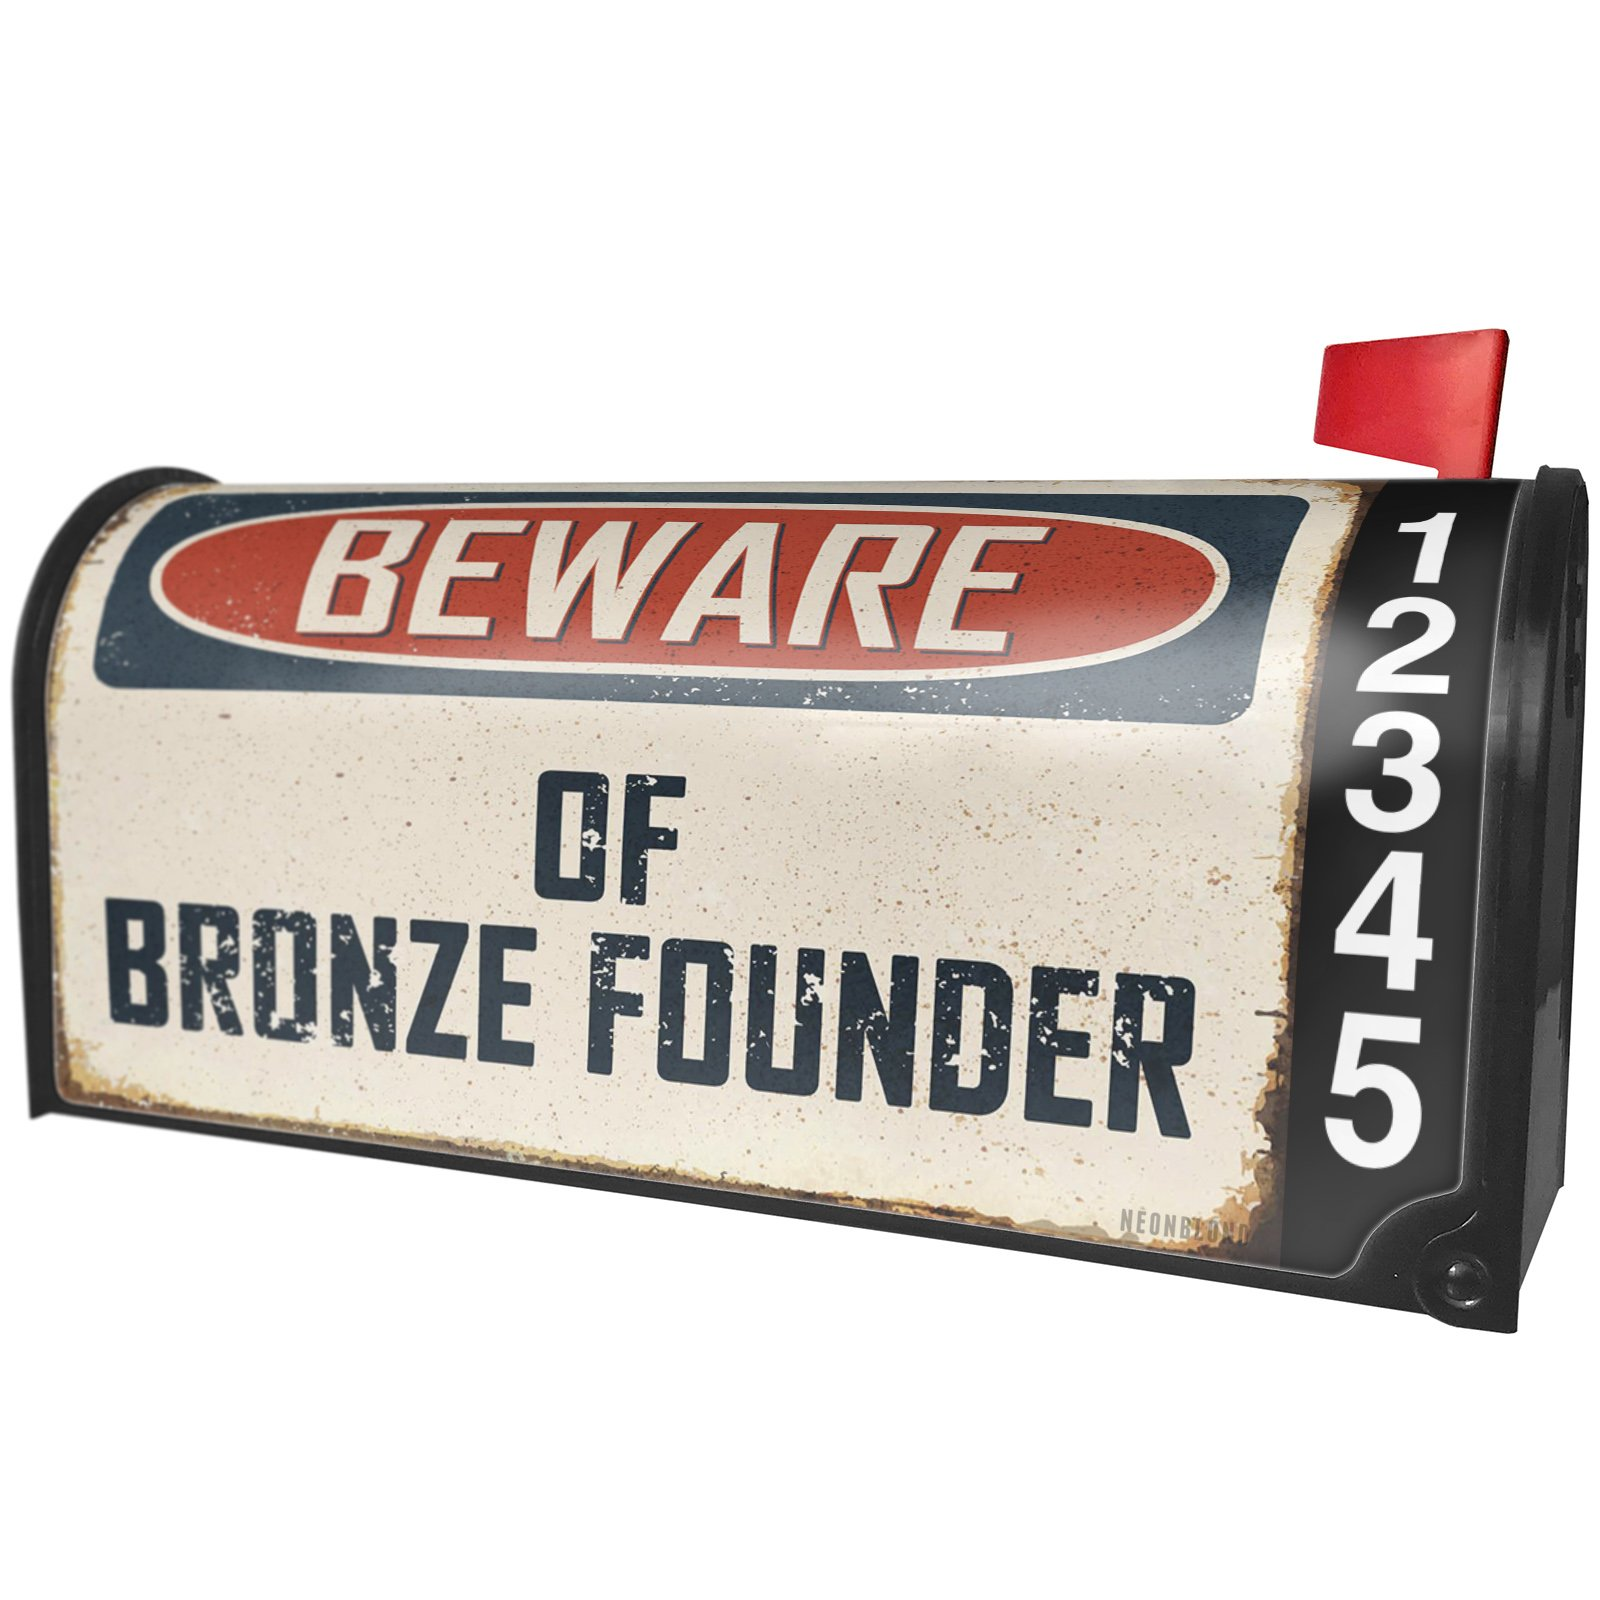 NEONBLOND Beware Of Bronze Founder Vintage Funny Sign Magnetic Mailbox Cover Custom Numbers